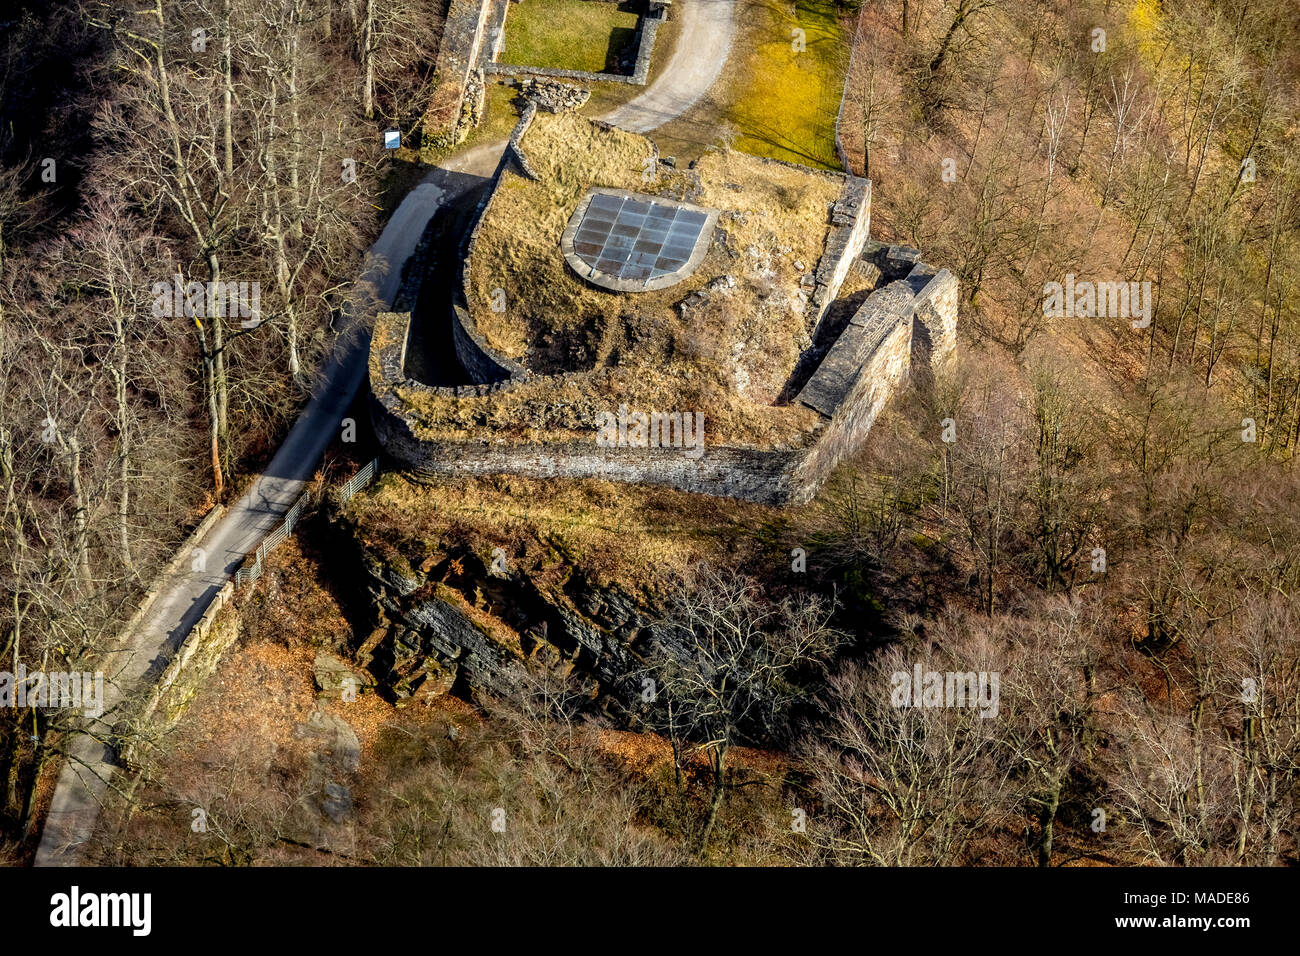 Castle Isenburg, Isenhügel, ASSOCIATION FOR THE CONSERVATION OF ISENBURG EV in Hattingen-Niederwenigern in North Rhine-Westphalia. Hattingen, Ruhr are - Stock Image